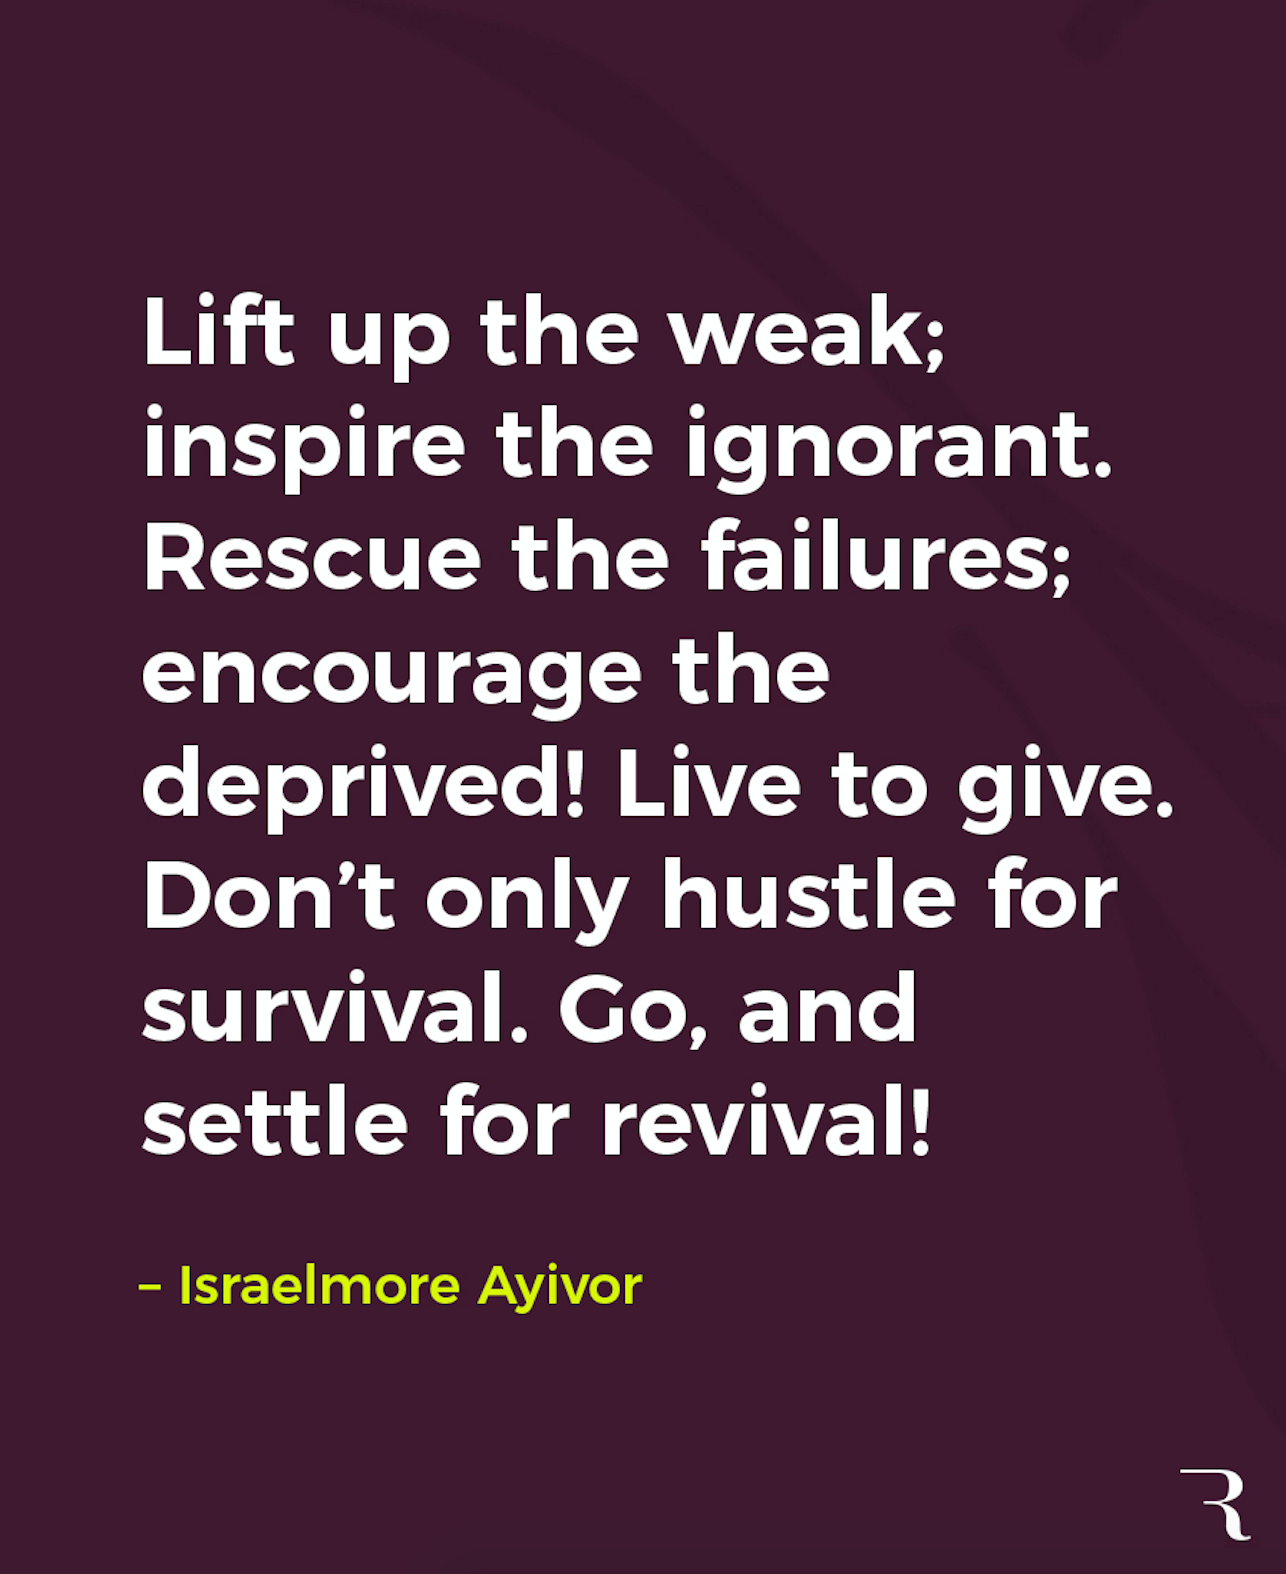 """Motivational Quotes: """"Lift up the weak; inspire the ignorant. Rescue the failures; encourage the deprived! Live to give. Don't only hustle for survival. Go, and settle for revival!"""" 112 Motivational Quotes to Be a Better Entrepreneur"""